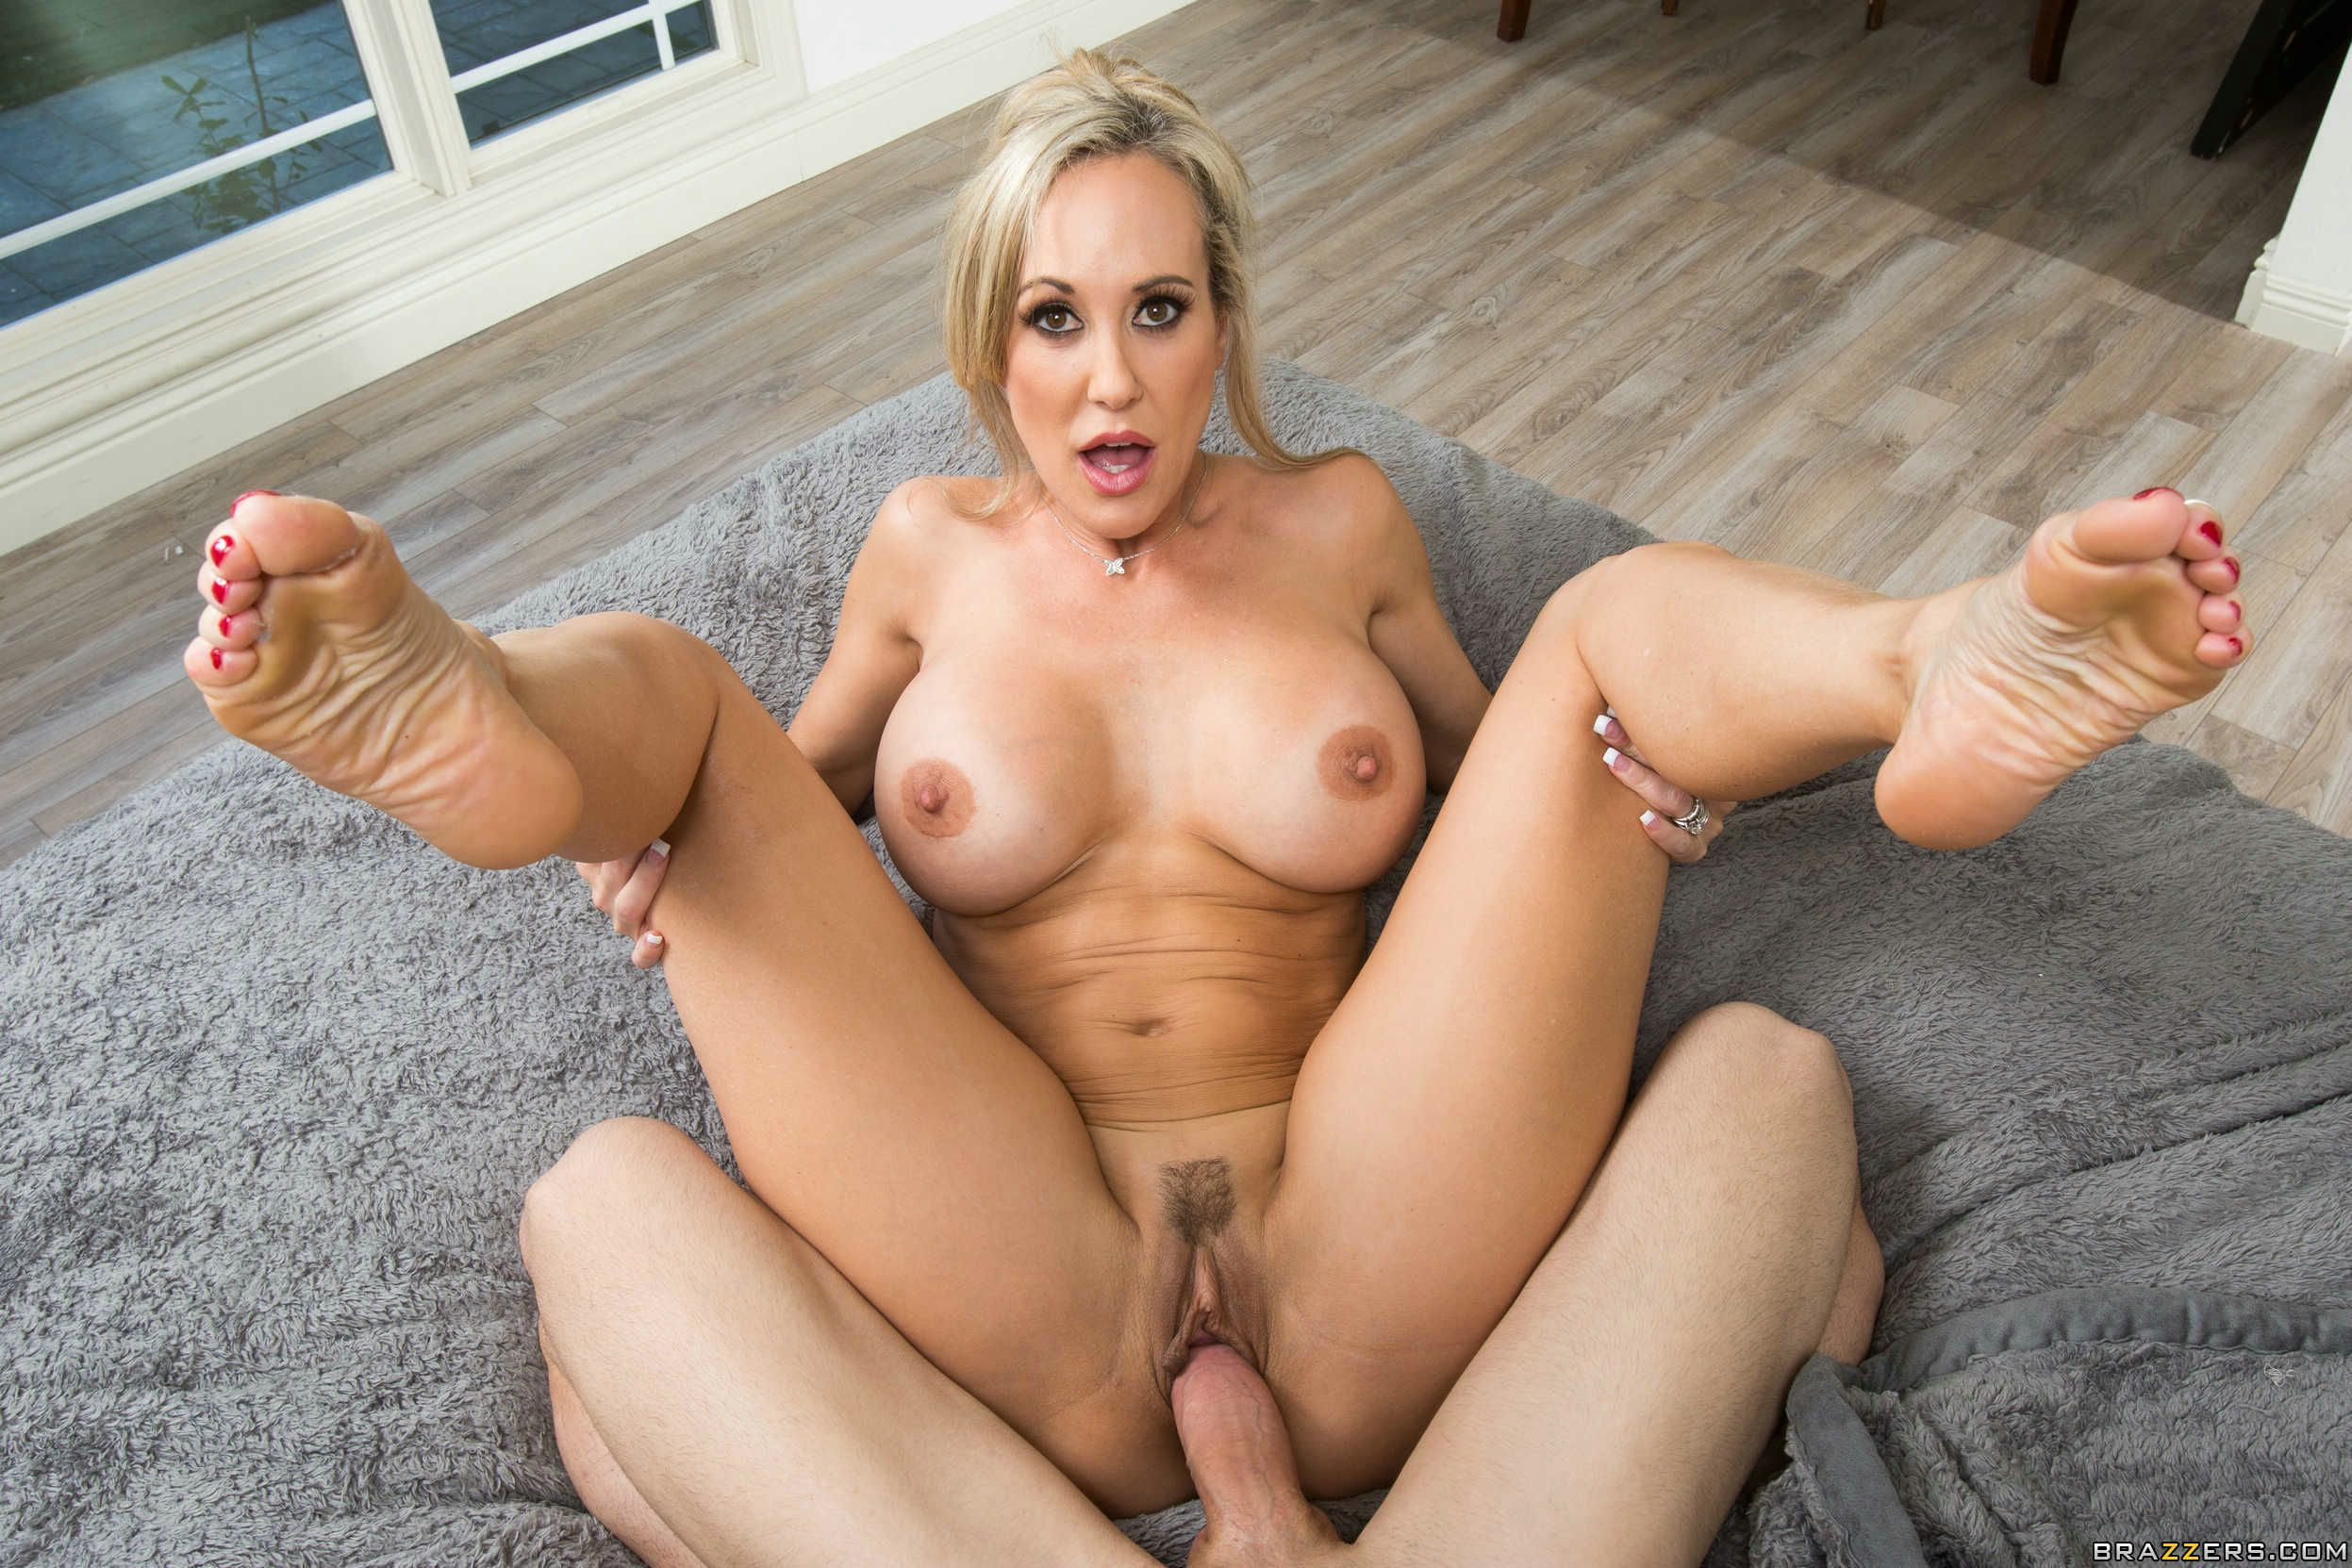 Brandi love hot mature blonde hot sex with bad boy in the chair